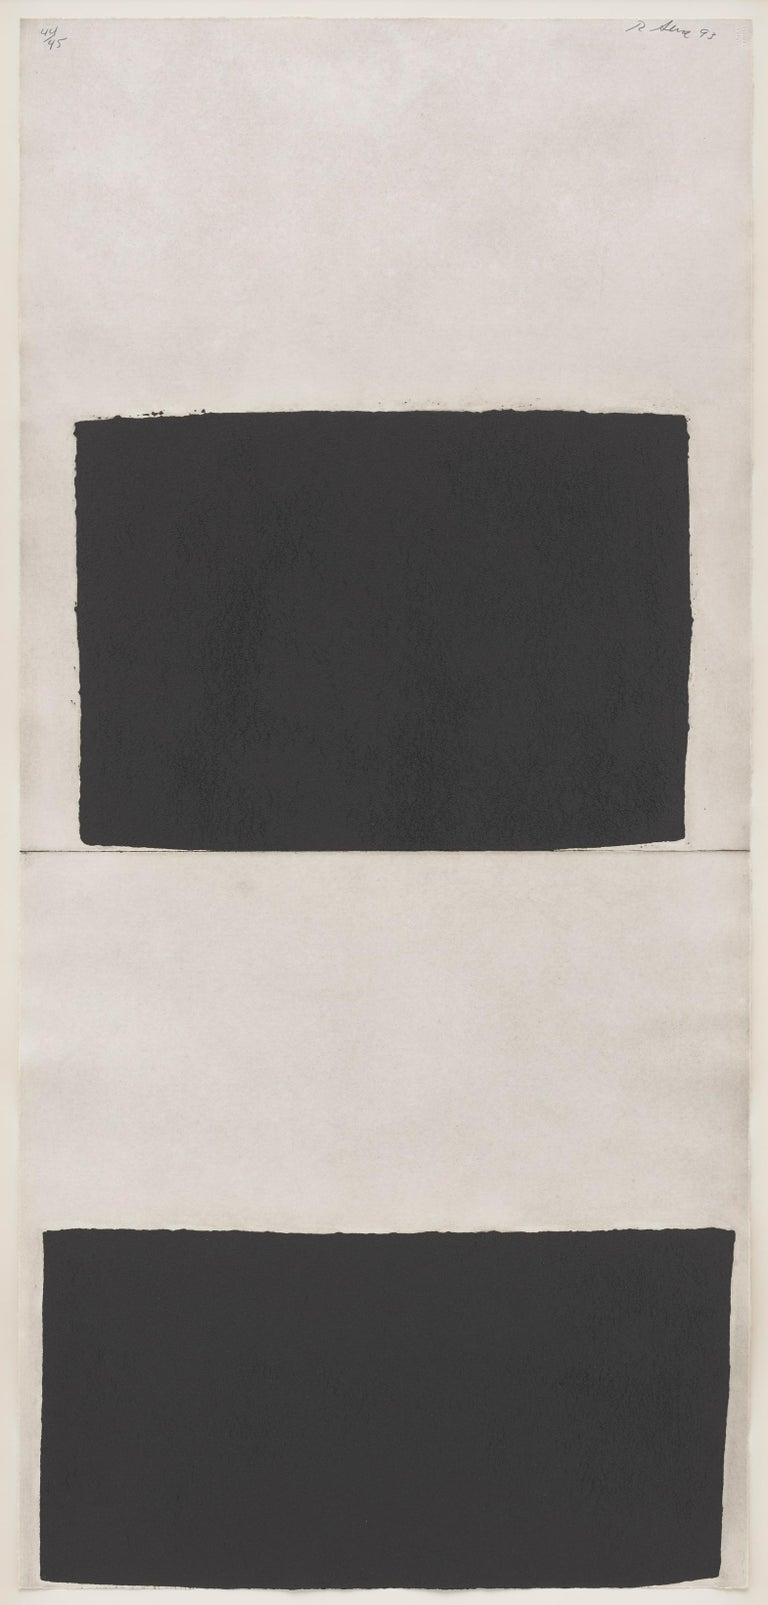 <i>Weight and Measure</i>, 1993, by Richard Serra, offered by Matthew Marks Gallery